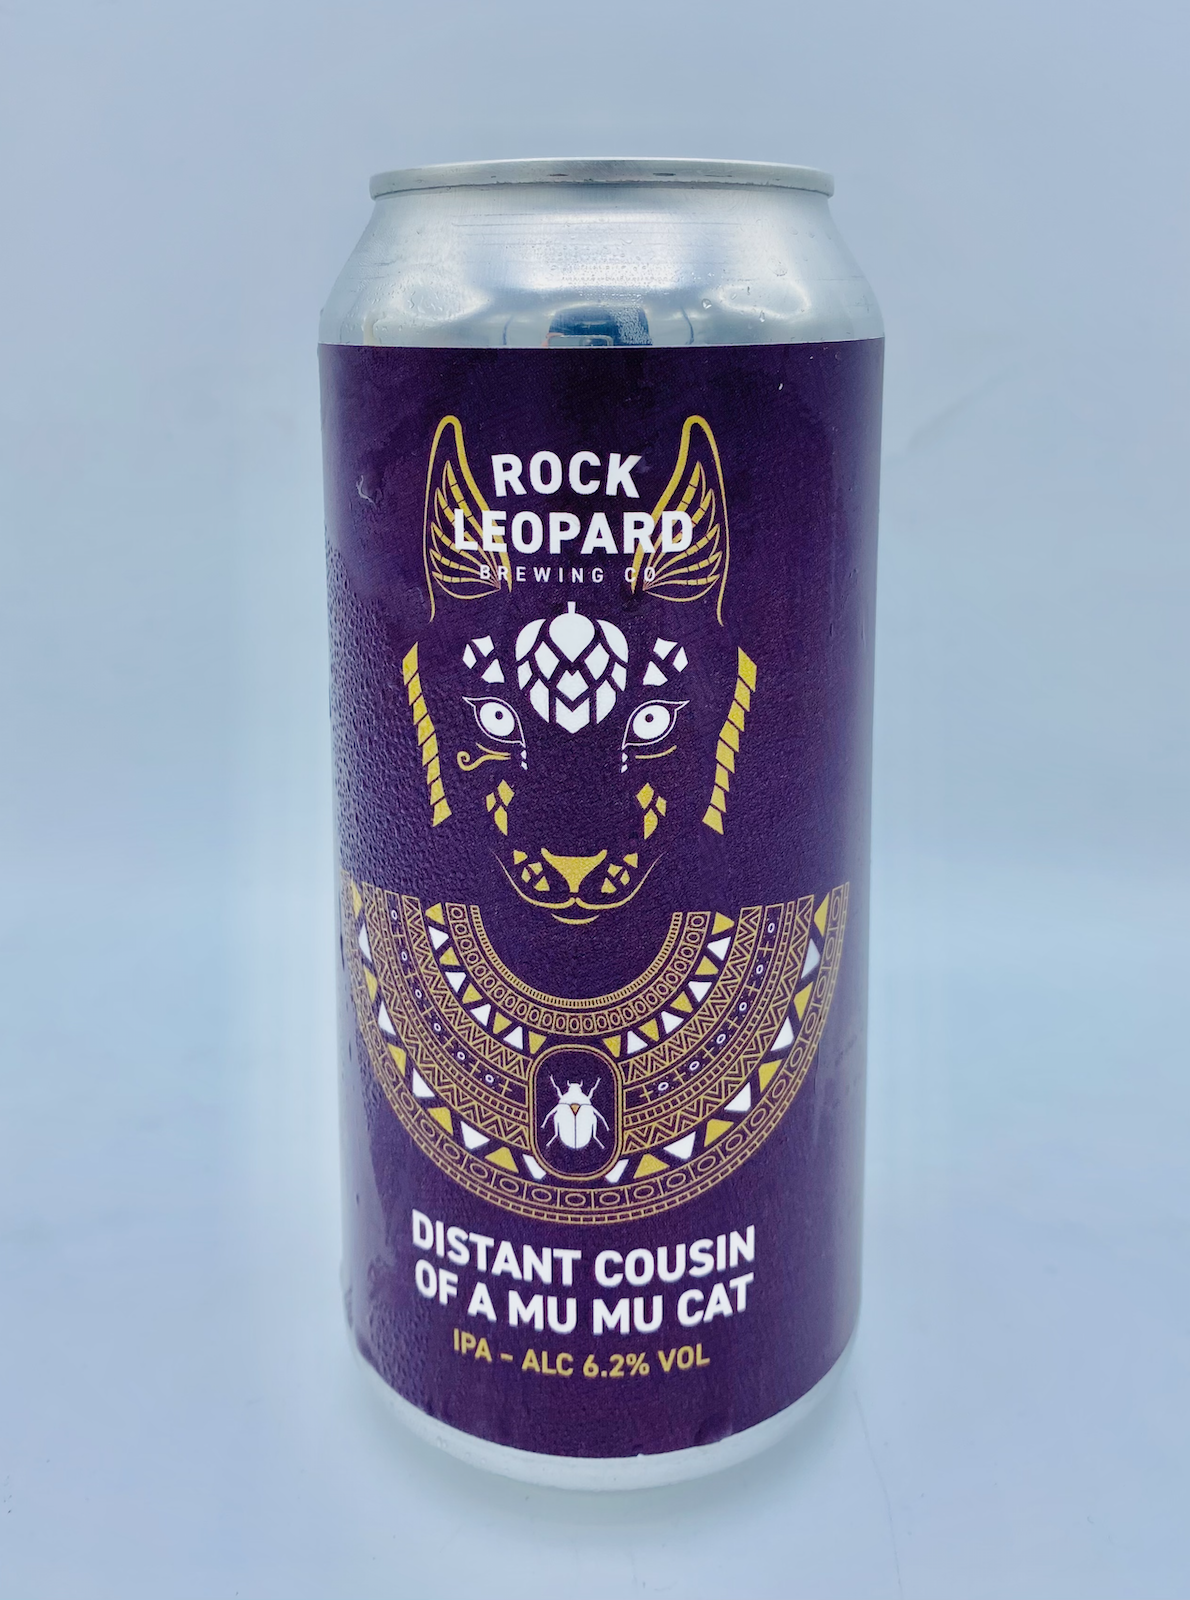 Rock Leopard - Distant Cousin of A Mu Mu Cat 6.2%